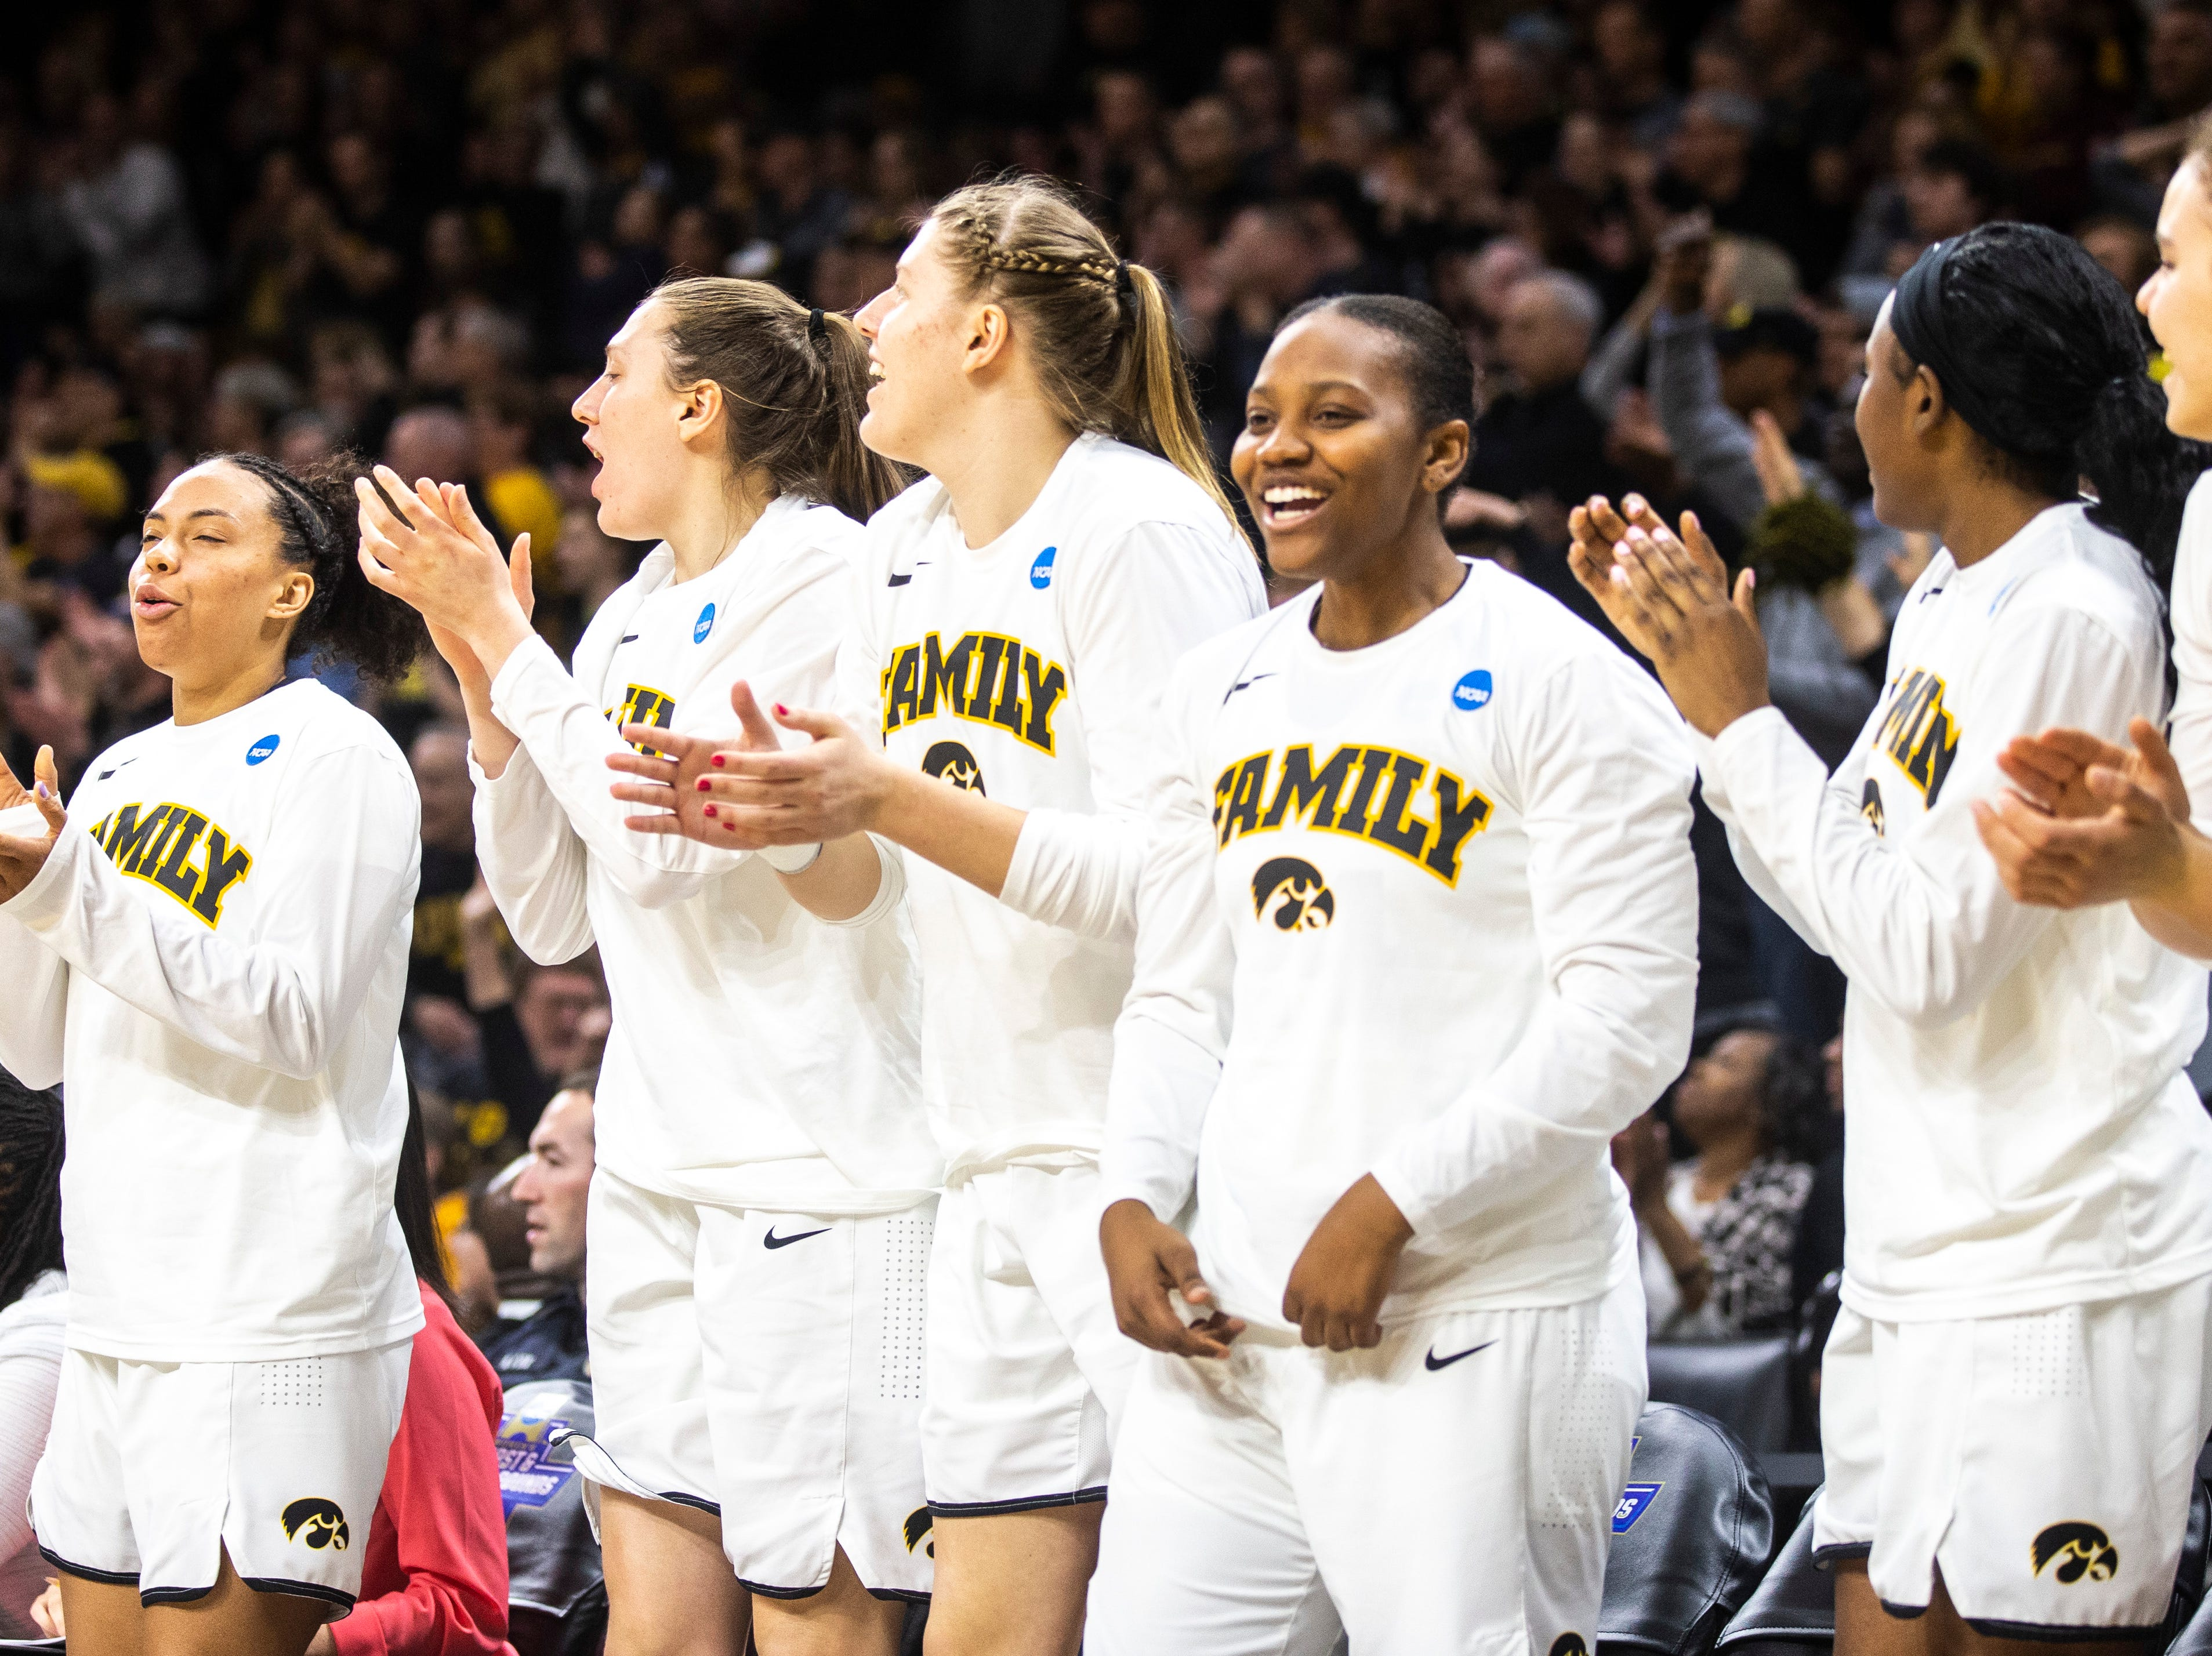 Iowa Hawkeyes bench cheers during a NCAA women's basketball tournament second-round game, Sunday, March 24, 2019, at Carver-Hawkeye Arena in Iowa City, Iowa.